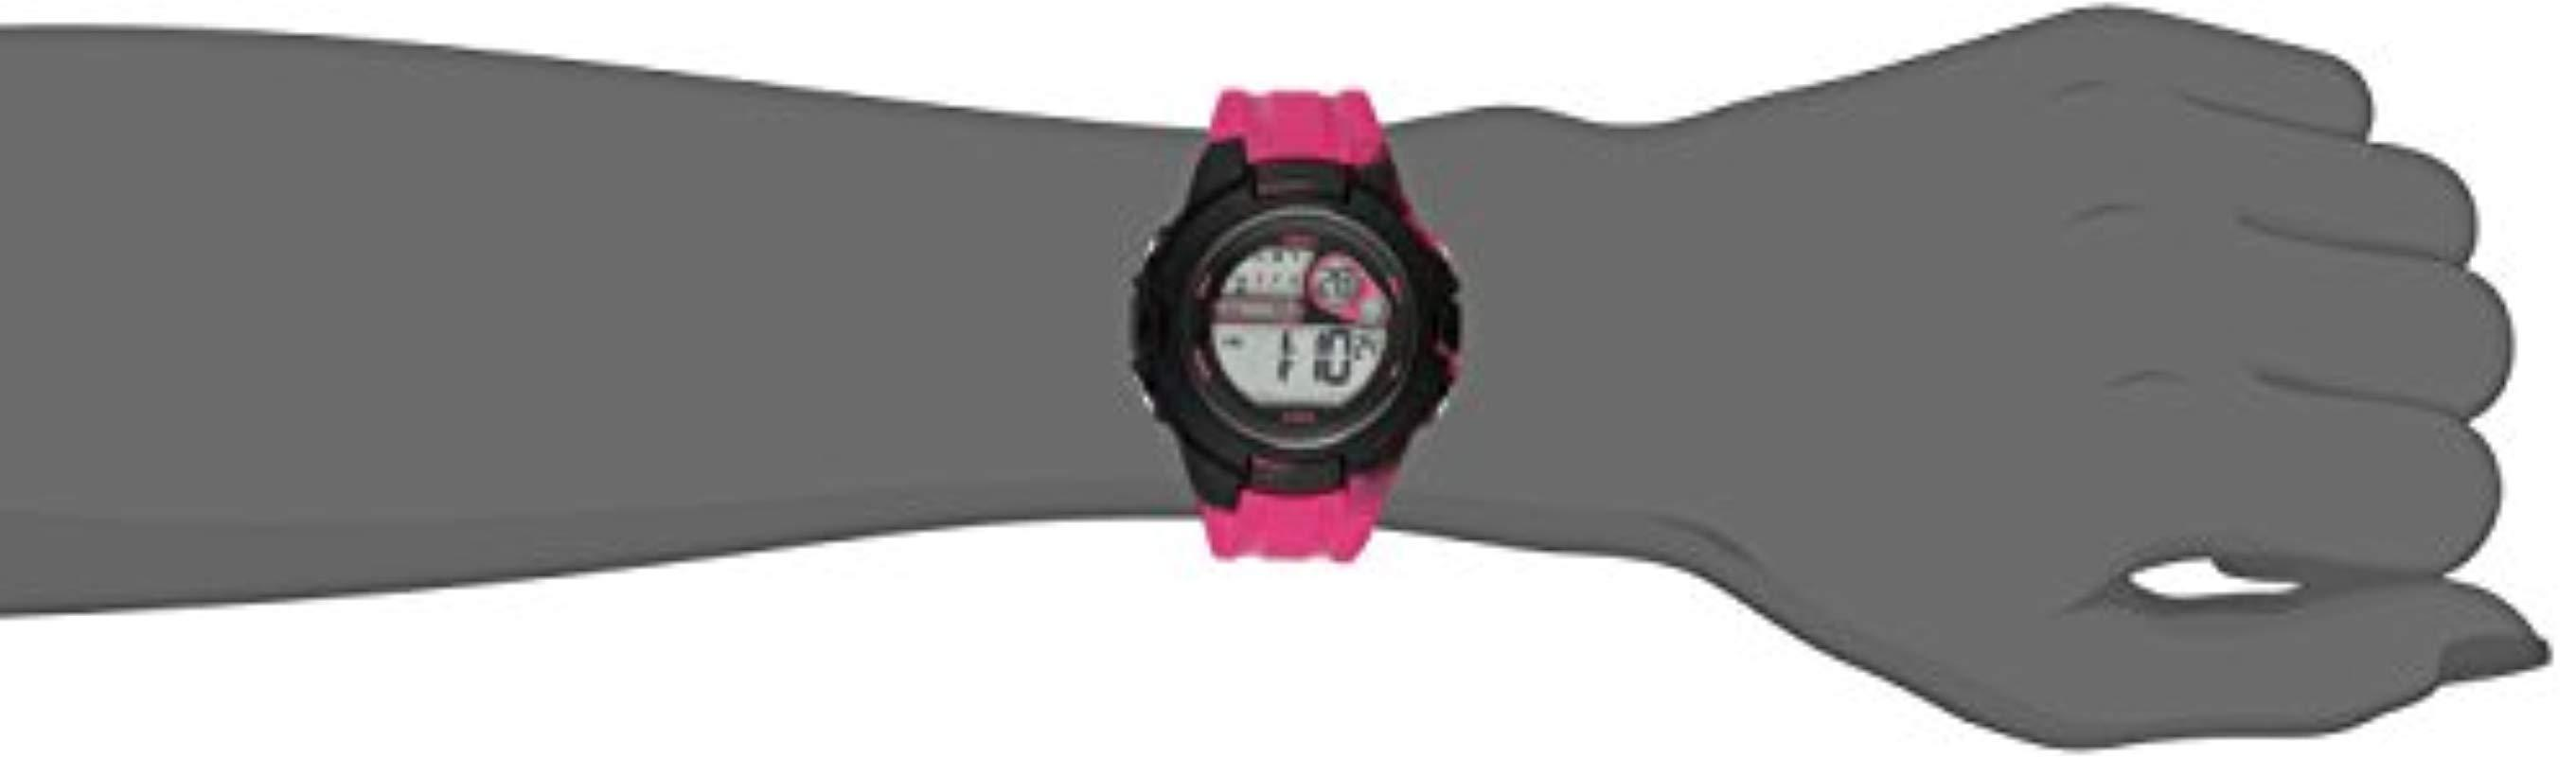 cf56090eee Lyst - Roxy Rx 1014pkbk The Tour Pink And Black Digital Chronograph ...